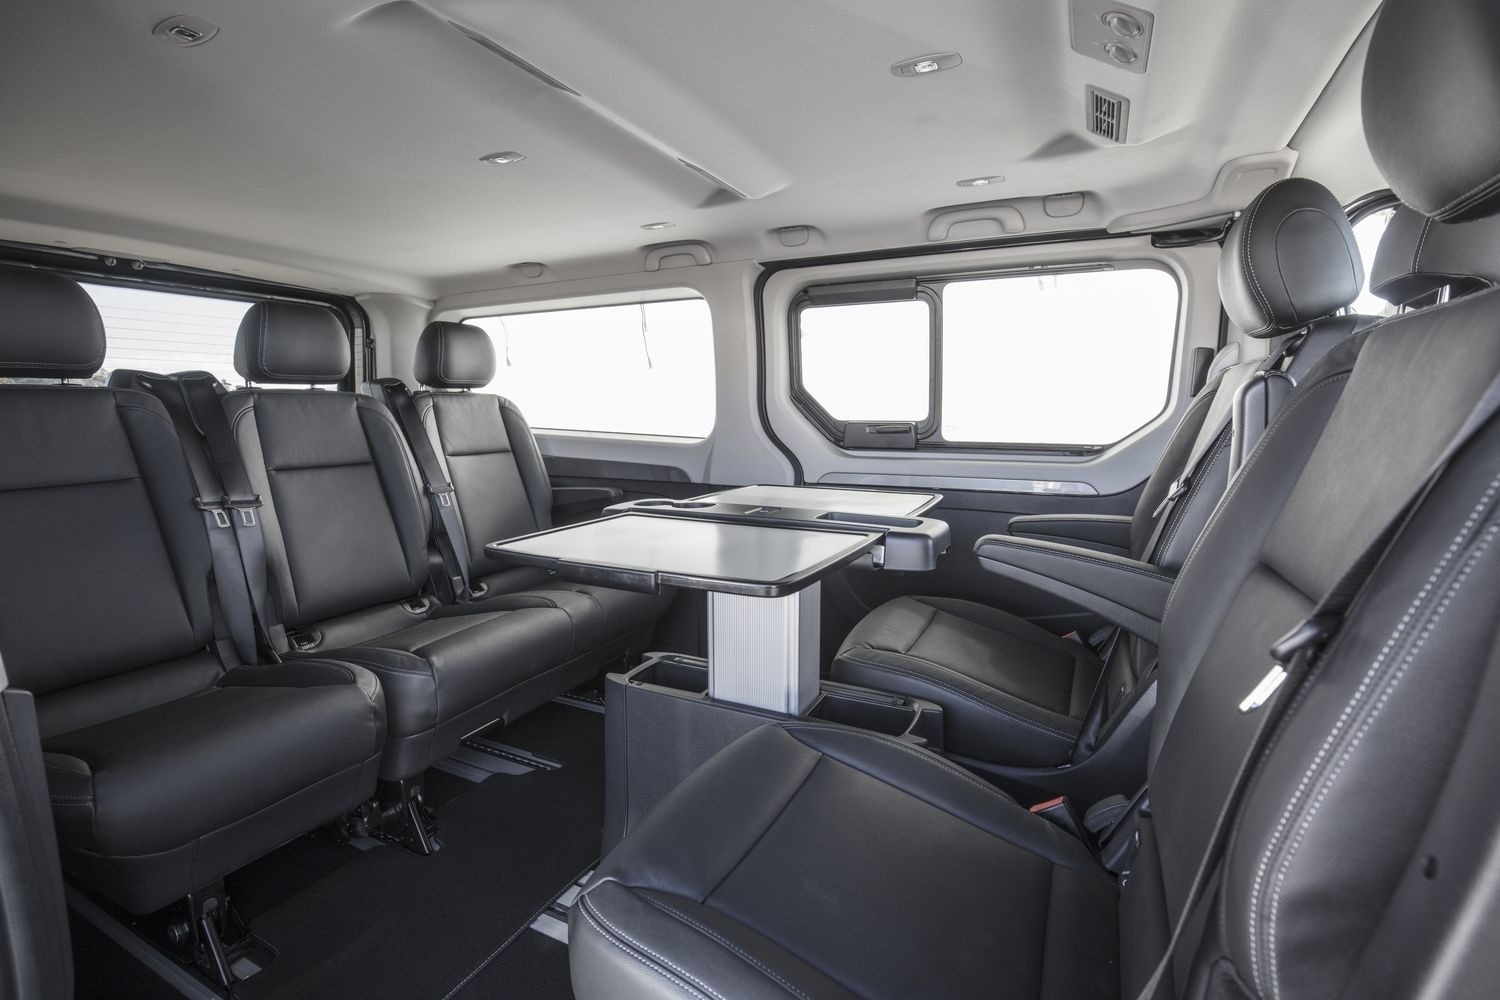 renault trafic spaceclass mont e en gamme sur la croisette. Black Bedroom Furniture Sets. Home Design Ideas